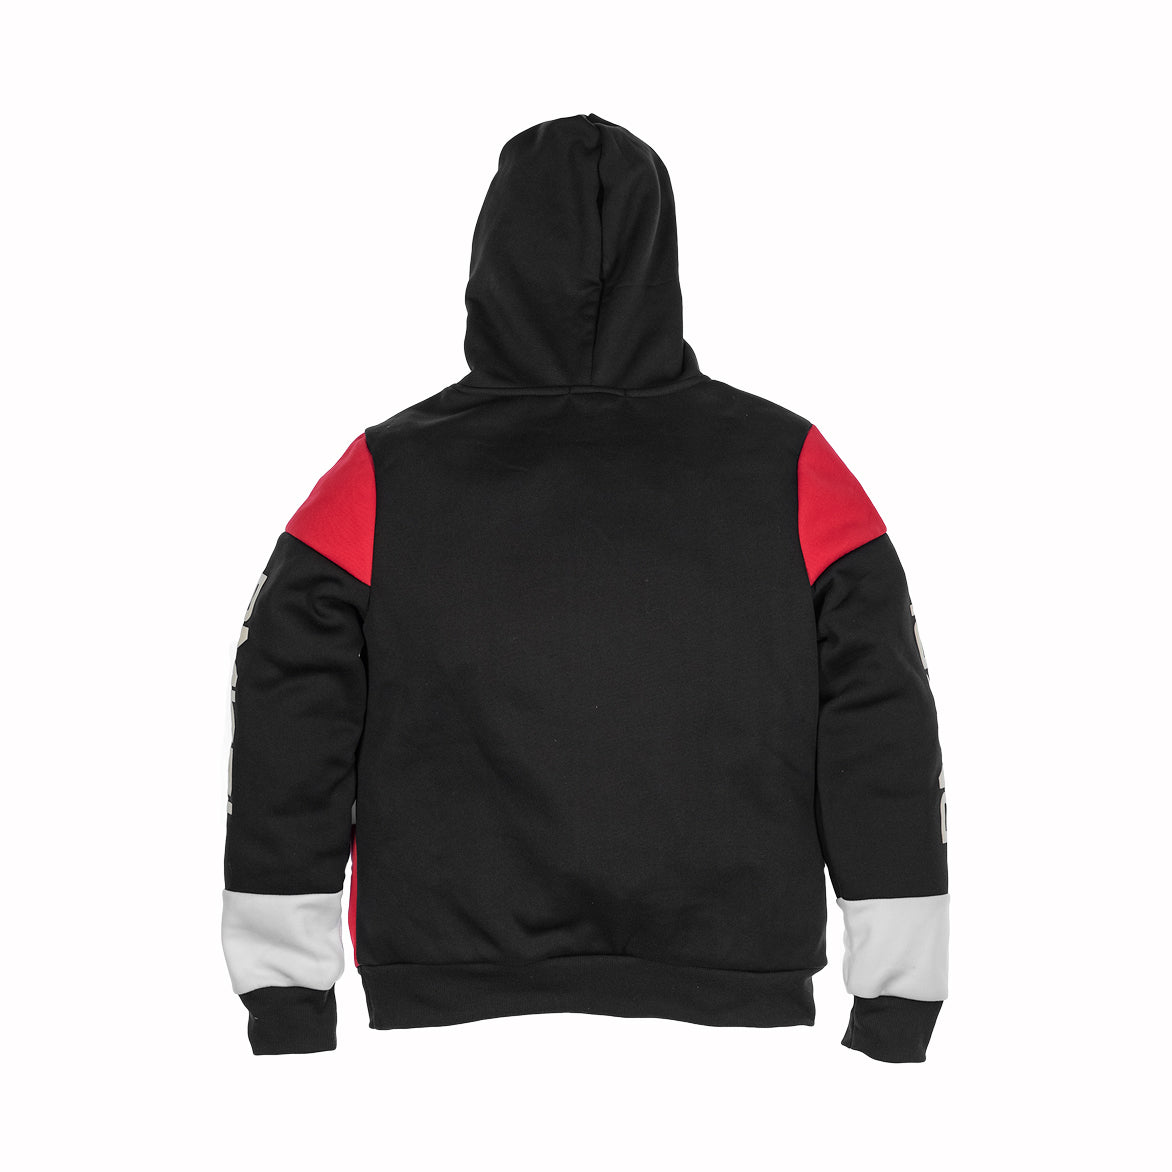 MAD CITY FLEECE HOODIE - BLACK